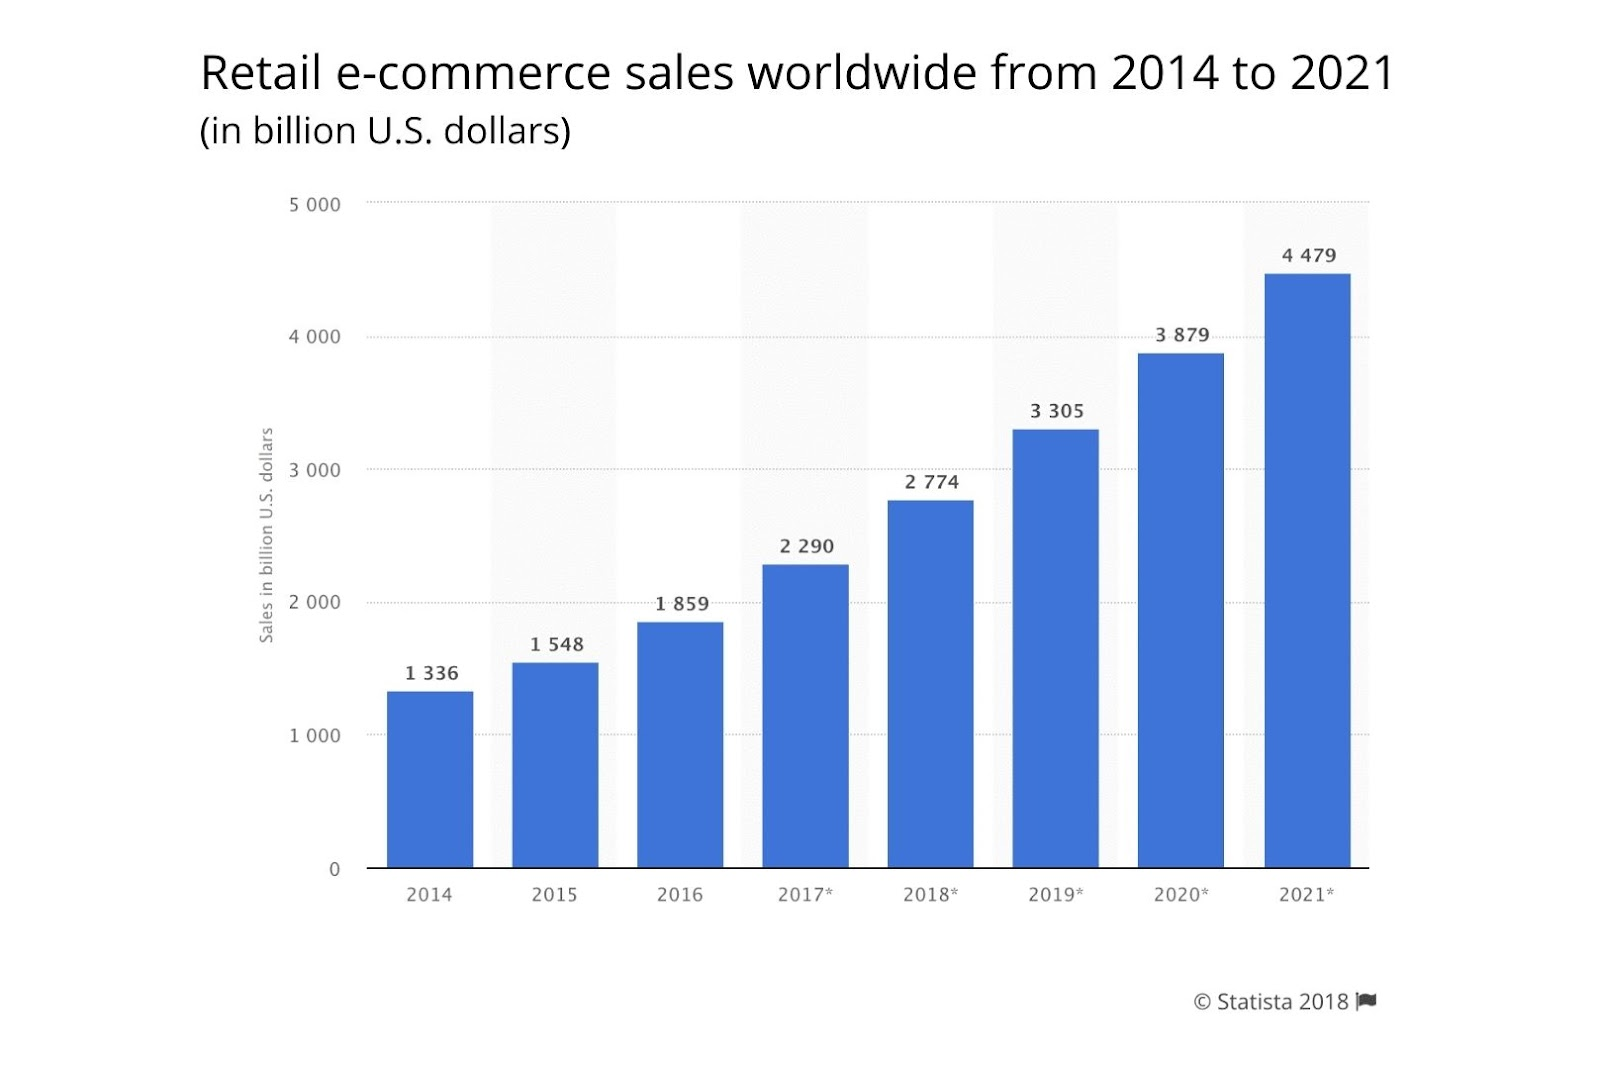 retail e-commerce sales worldwide